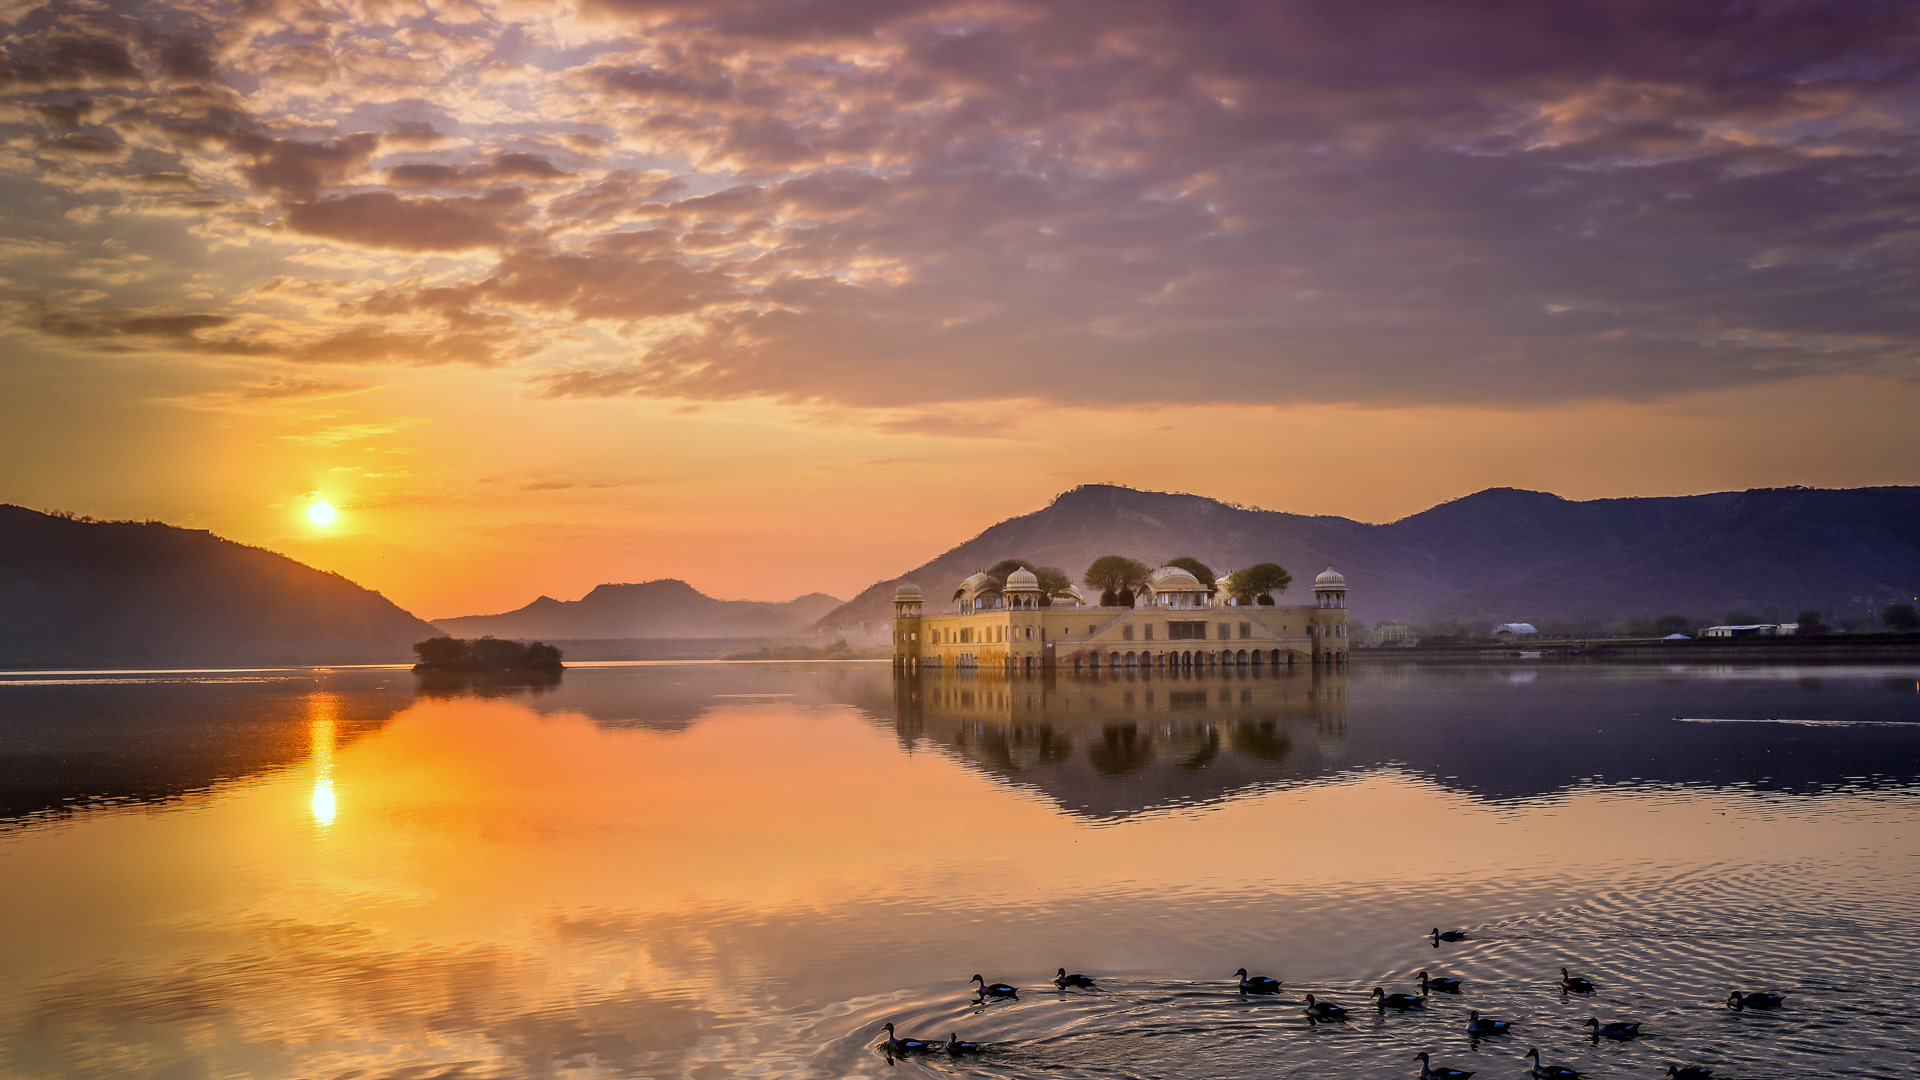 Jal Mahal palace in Jaipur, India